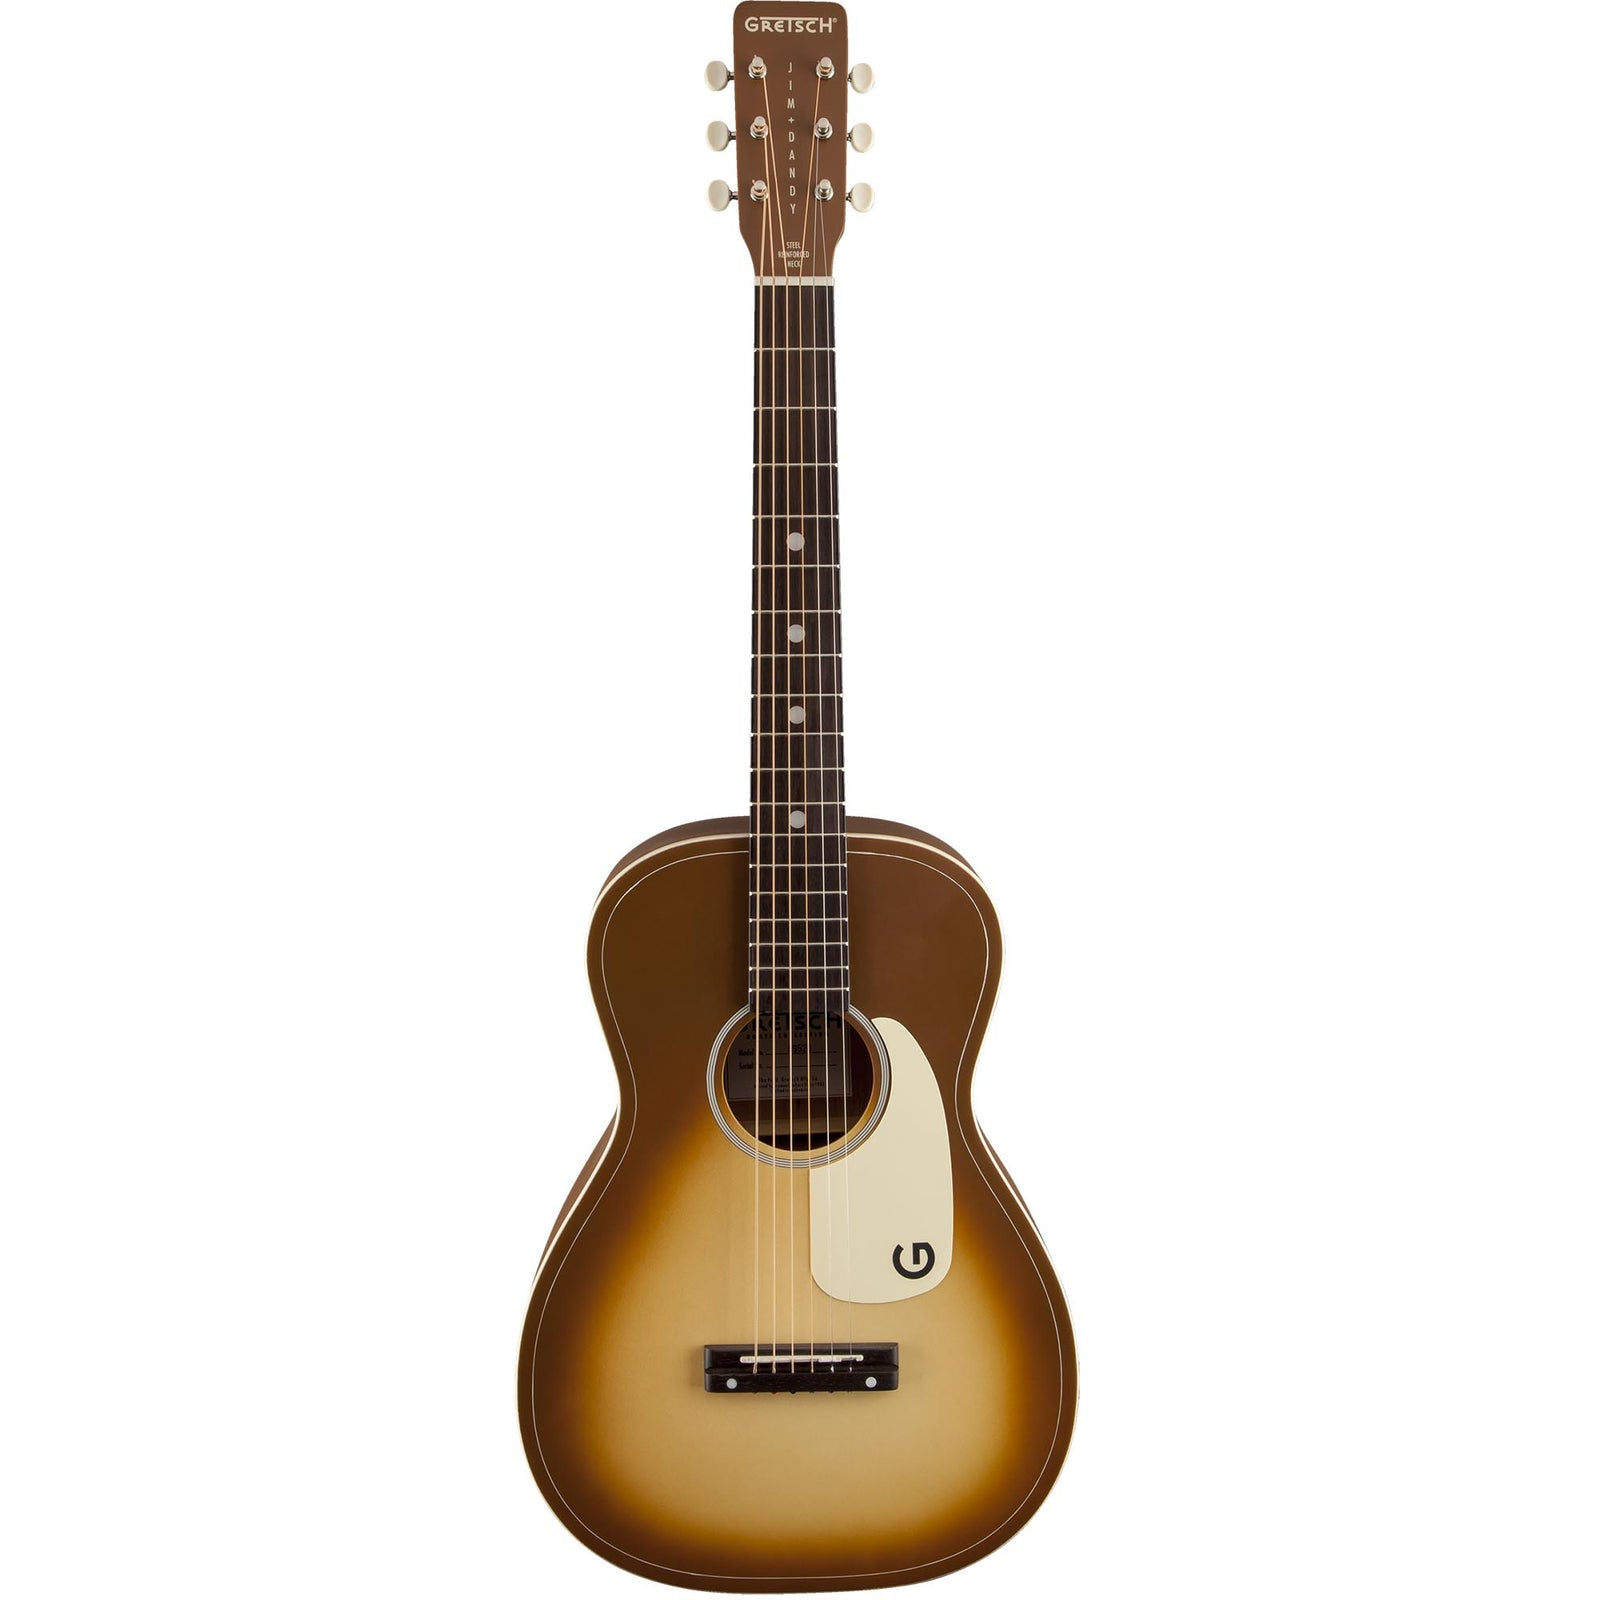 Gretsch G9520-BRB Limited Jim Dandy Flat Top - Bronze Burst - Image: 3